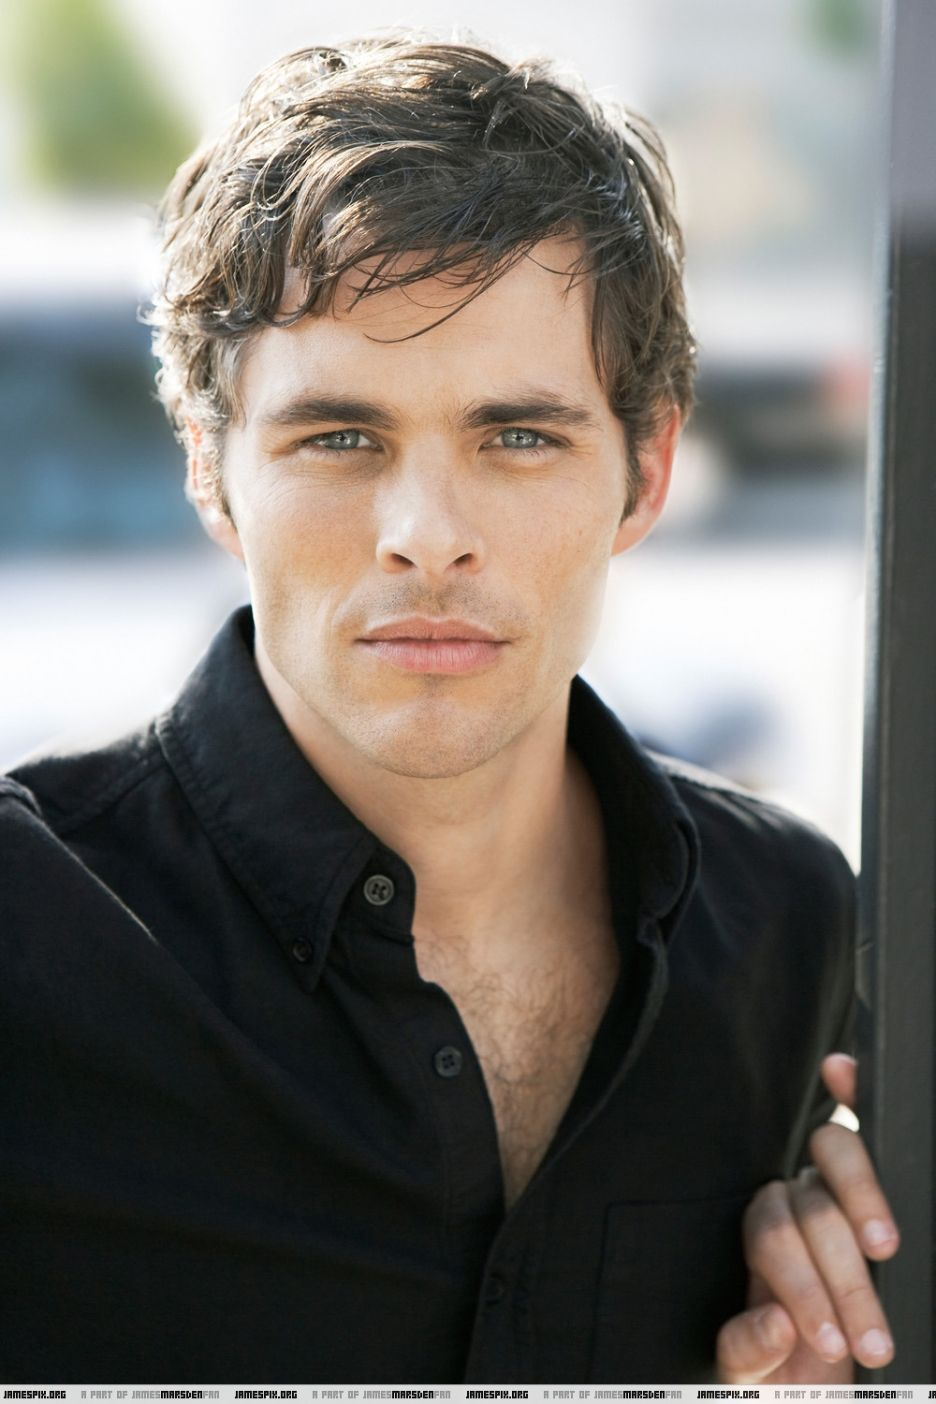 james marsden always on my mindjames marsden instagram, james marsden height, james marsden gif, james marsden movies, james marsden versace, james marsden tumblr, james marsden gif hunt, james marsden 2017, james marsden son, james marsden young, james marsden tom welling, james marsden hugh jackman, james marsden hairspray, james marsden listal, james marsden michelle monaghan, james marsden ian somerhalder, james marsden fan, james marsden always on my mind, james marsden jack black, james marsden movie list